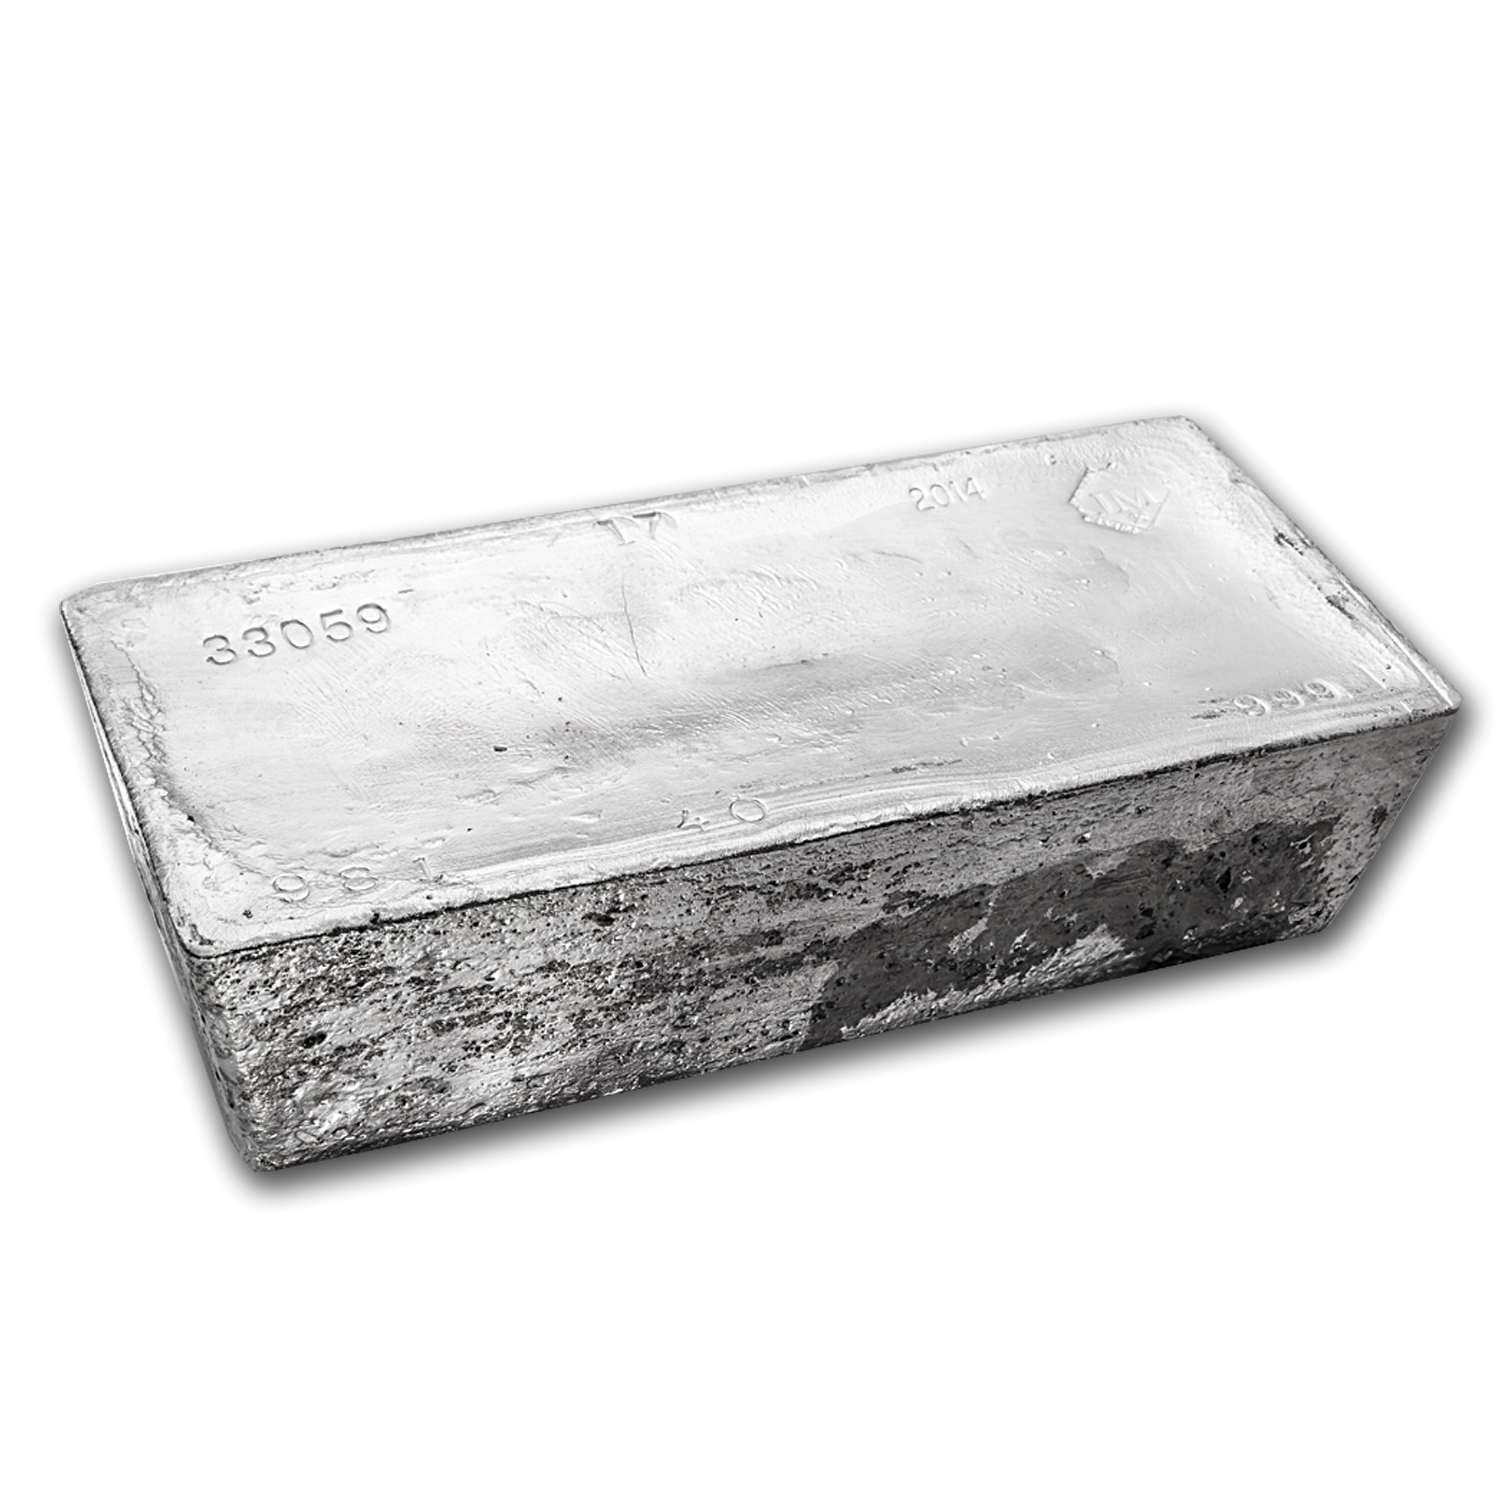 957.00 oz Silver Bars - Johnson Matthey